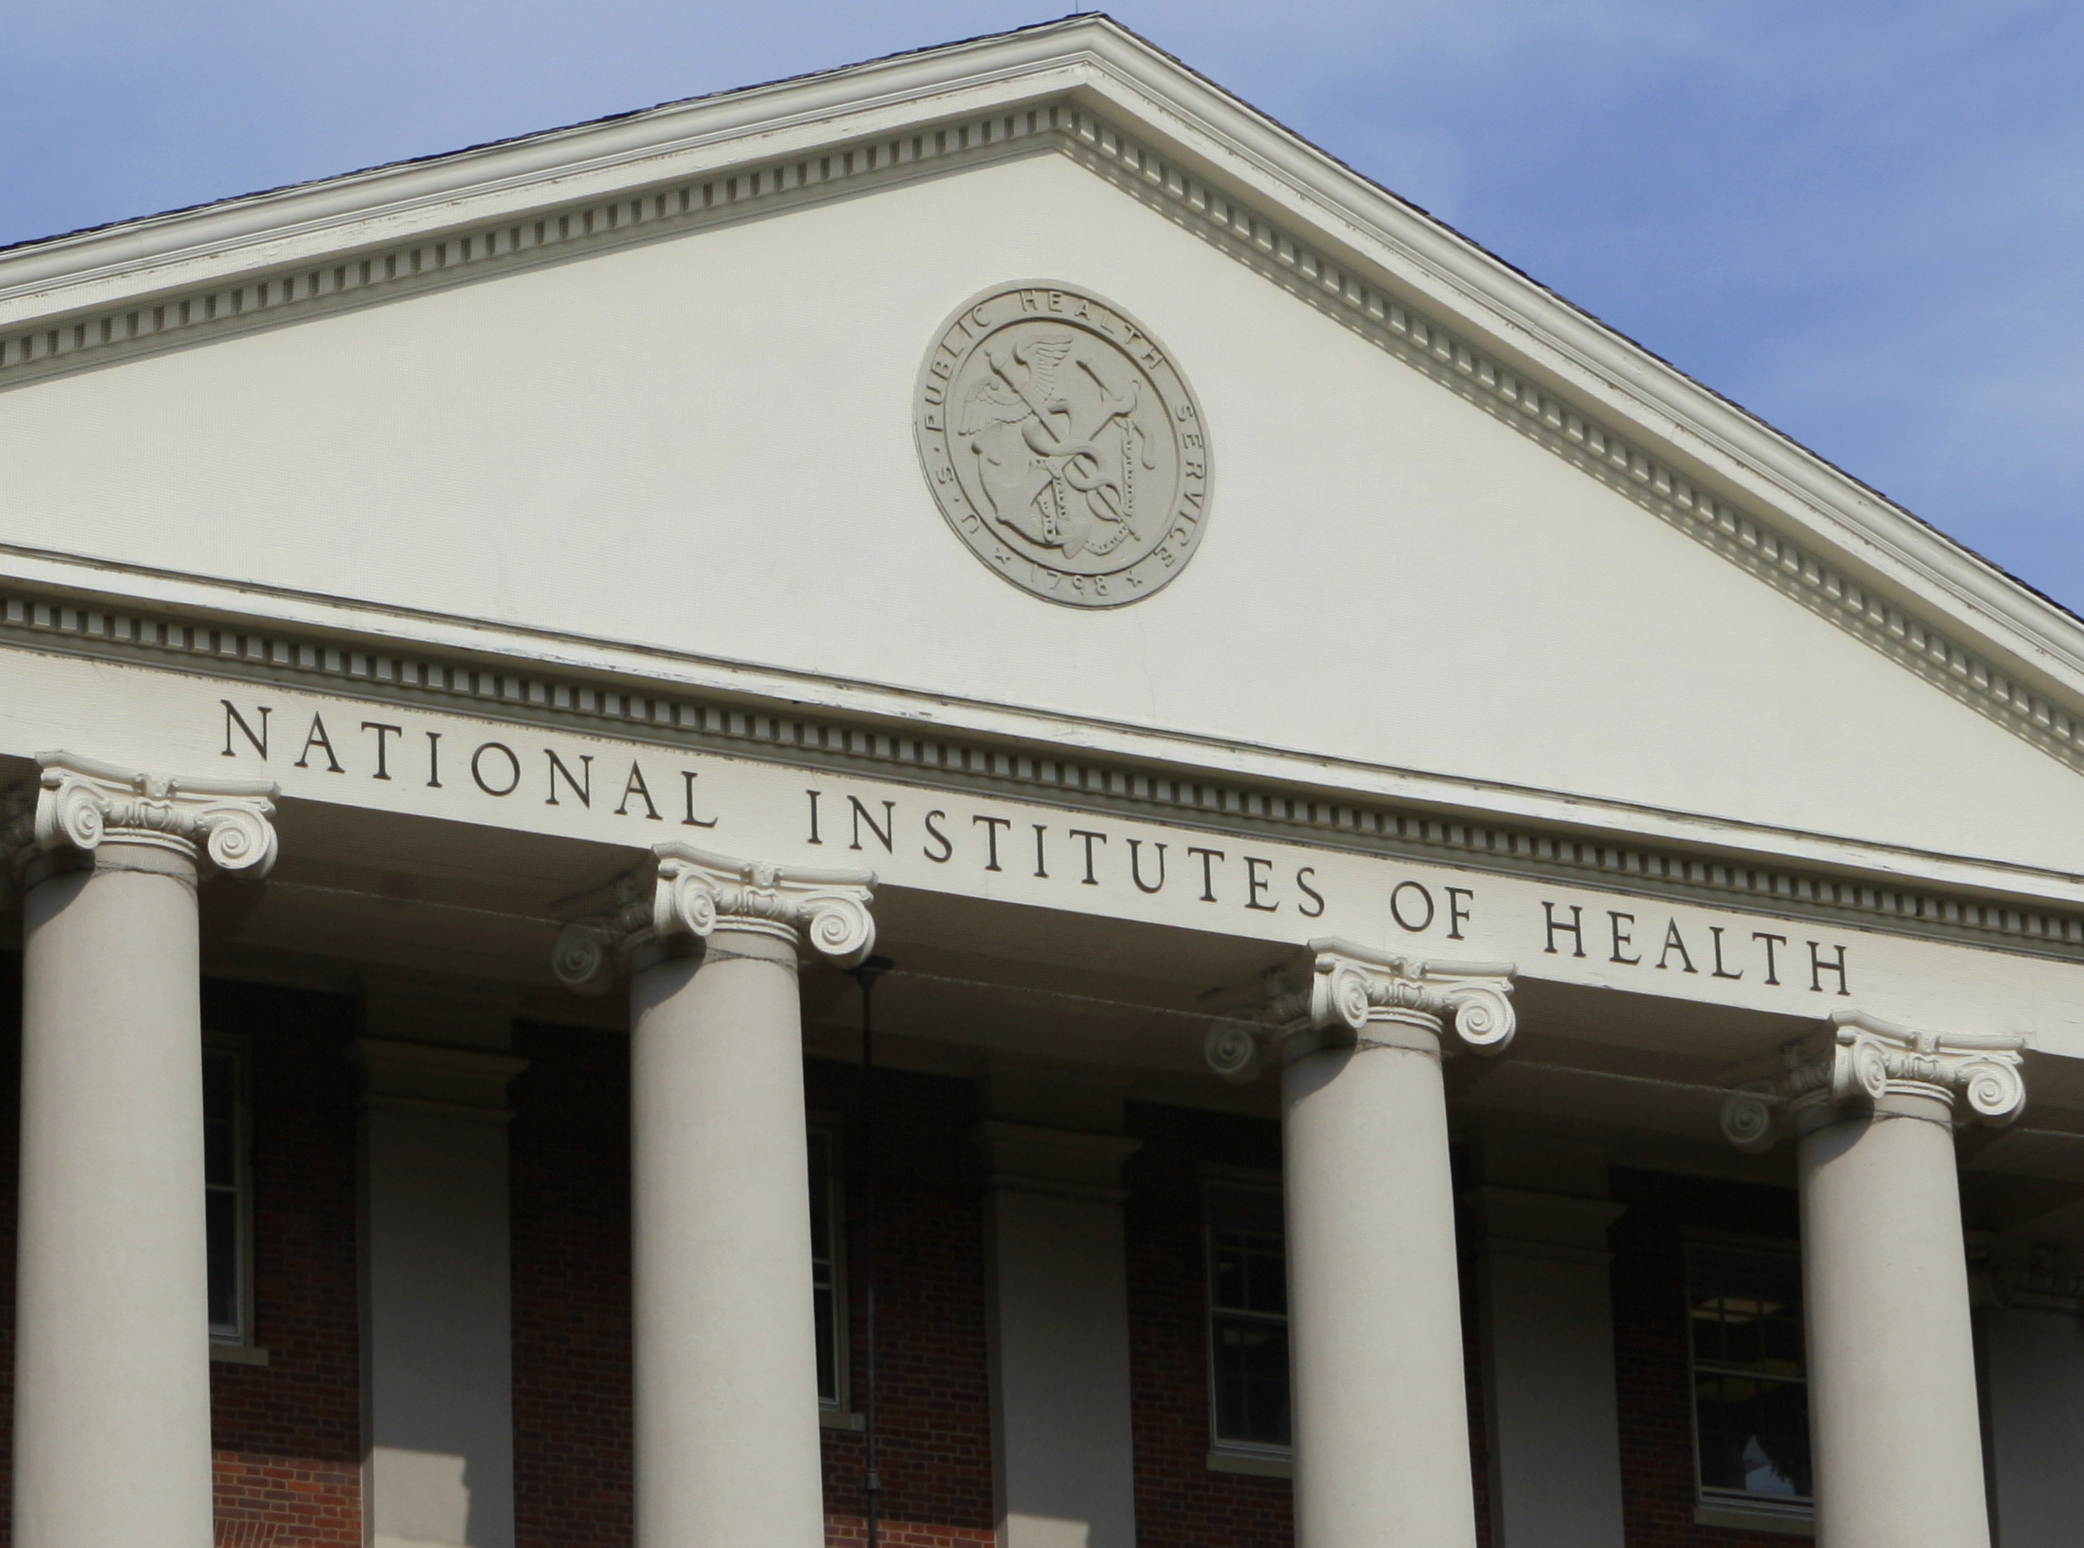 The administrative building of the National Institutes of Health is shown in Bethesda, Md., Monday, Aug. 17, 2009.